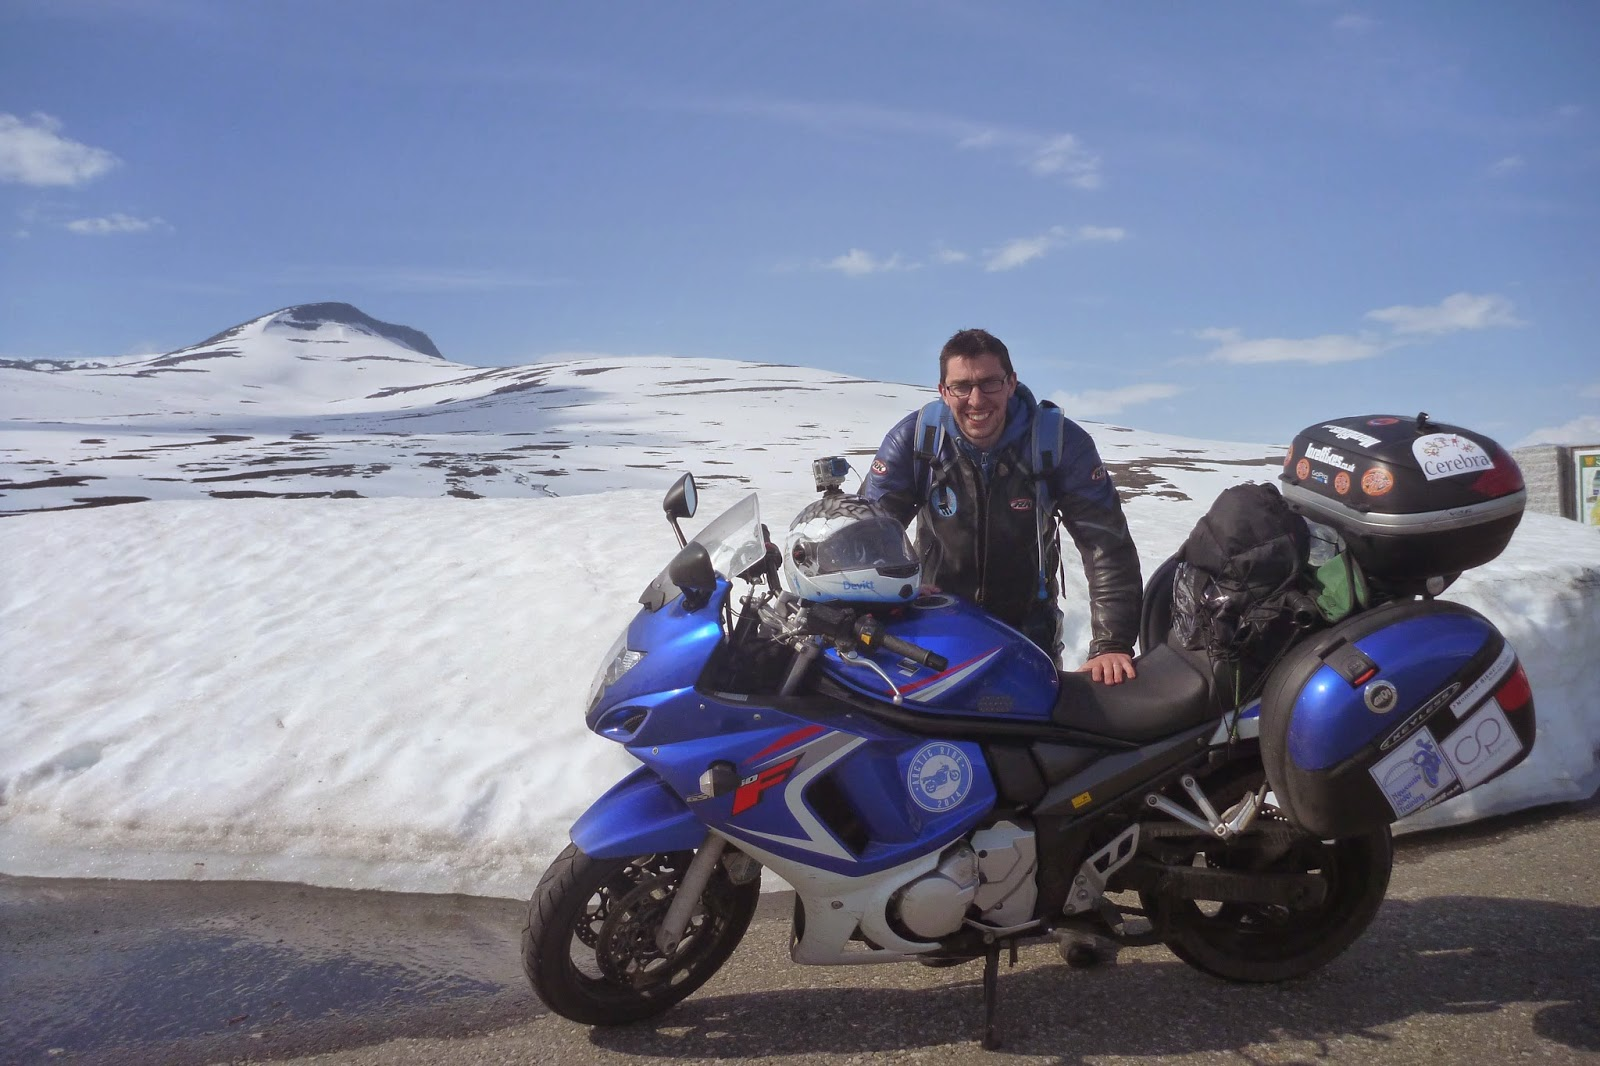 medium resolution of my gsx 650f and i at the arctic circle in norway